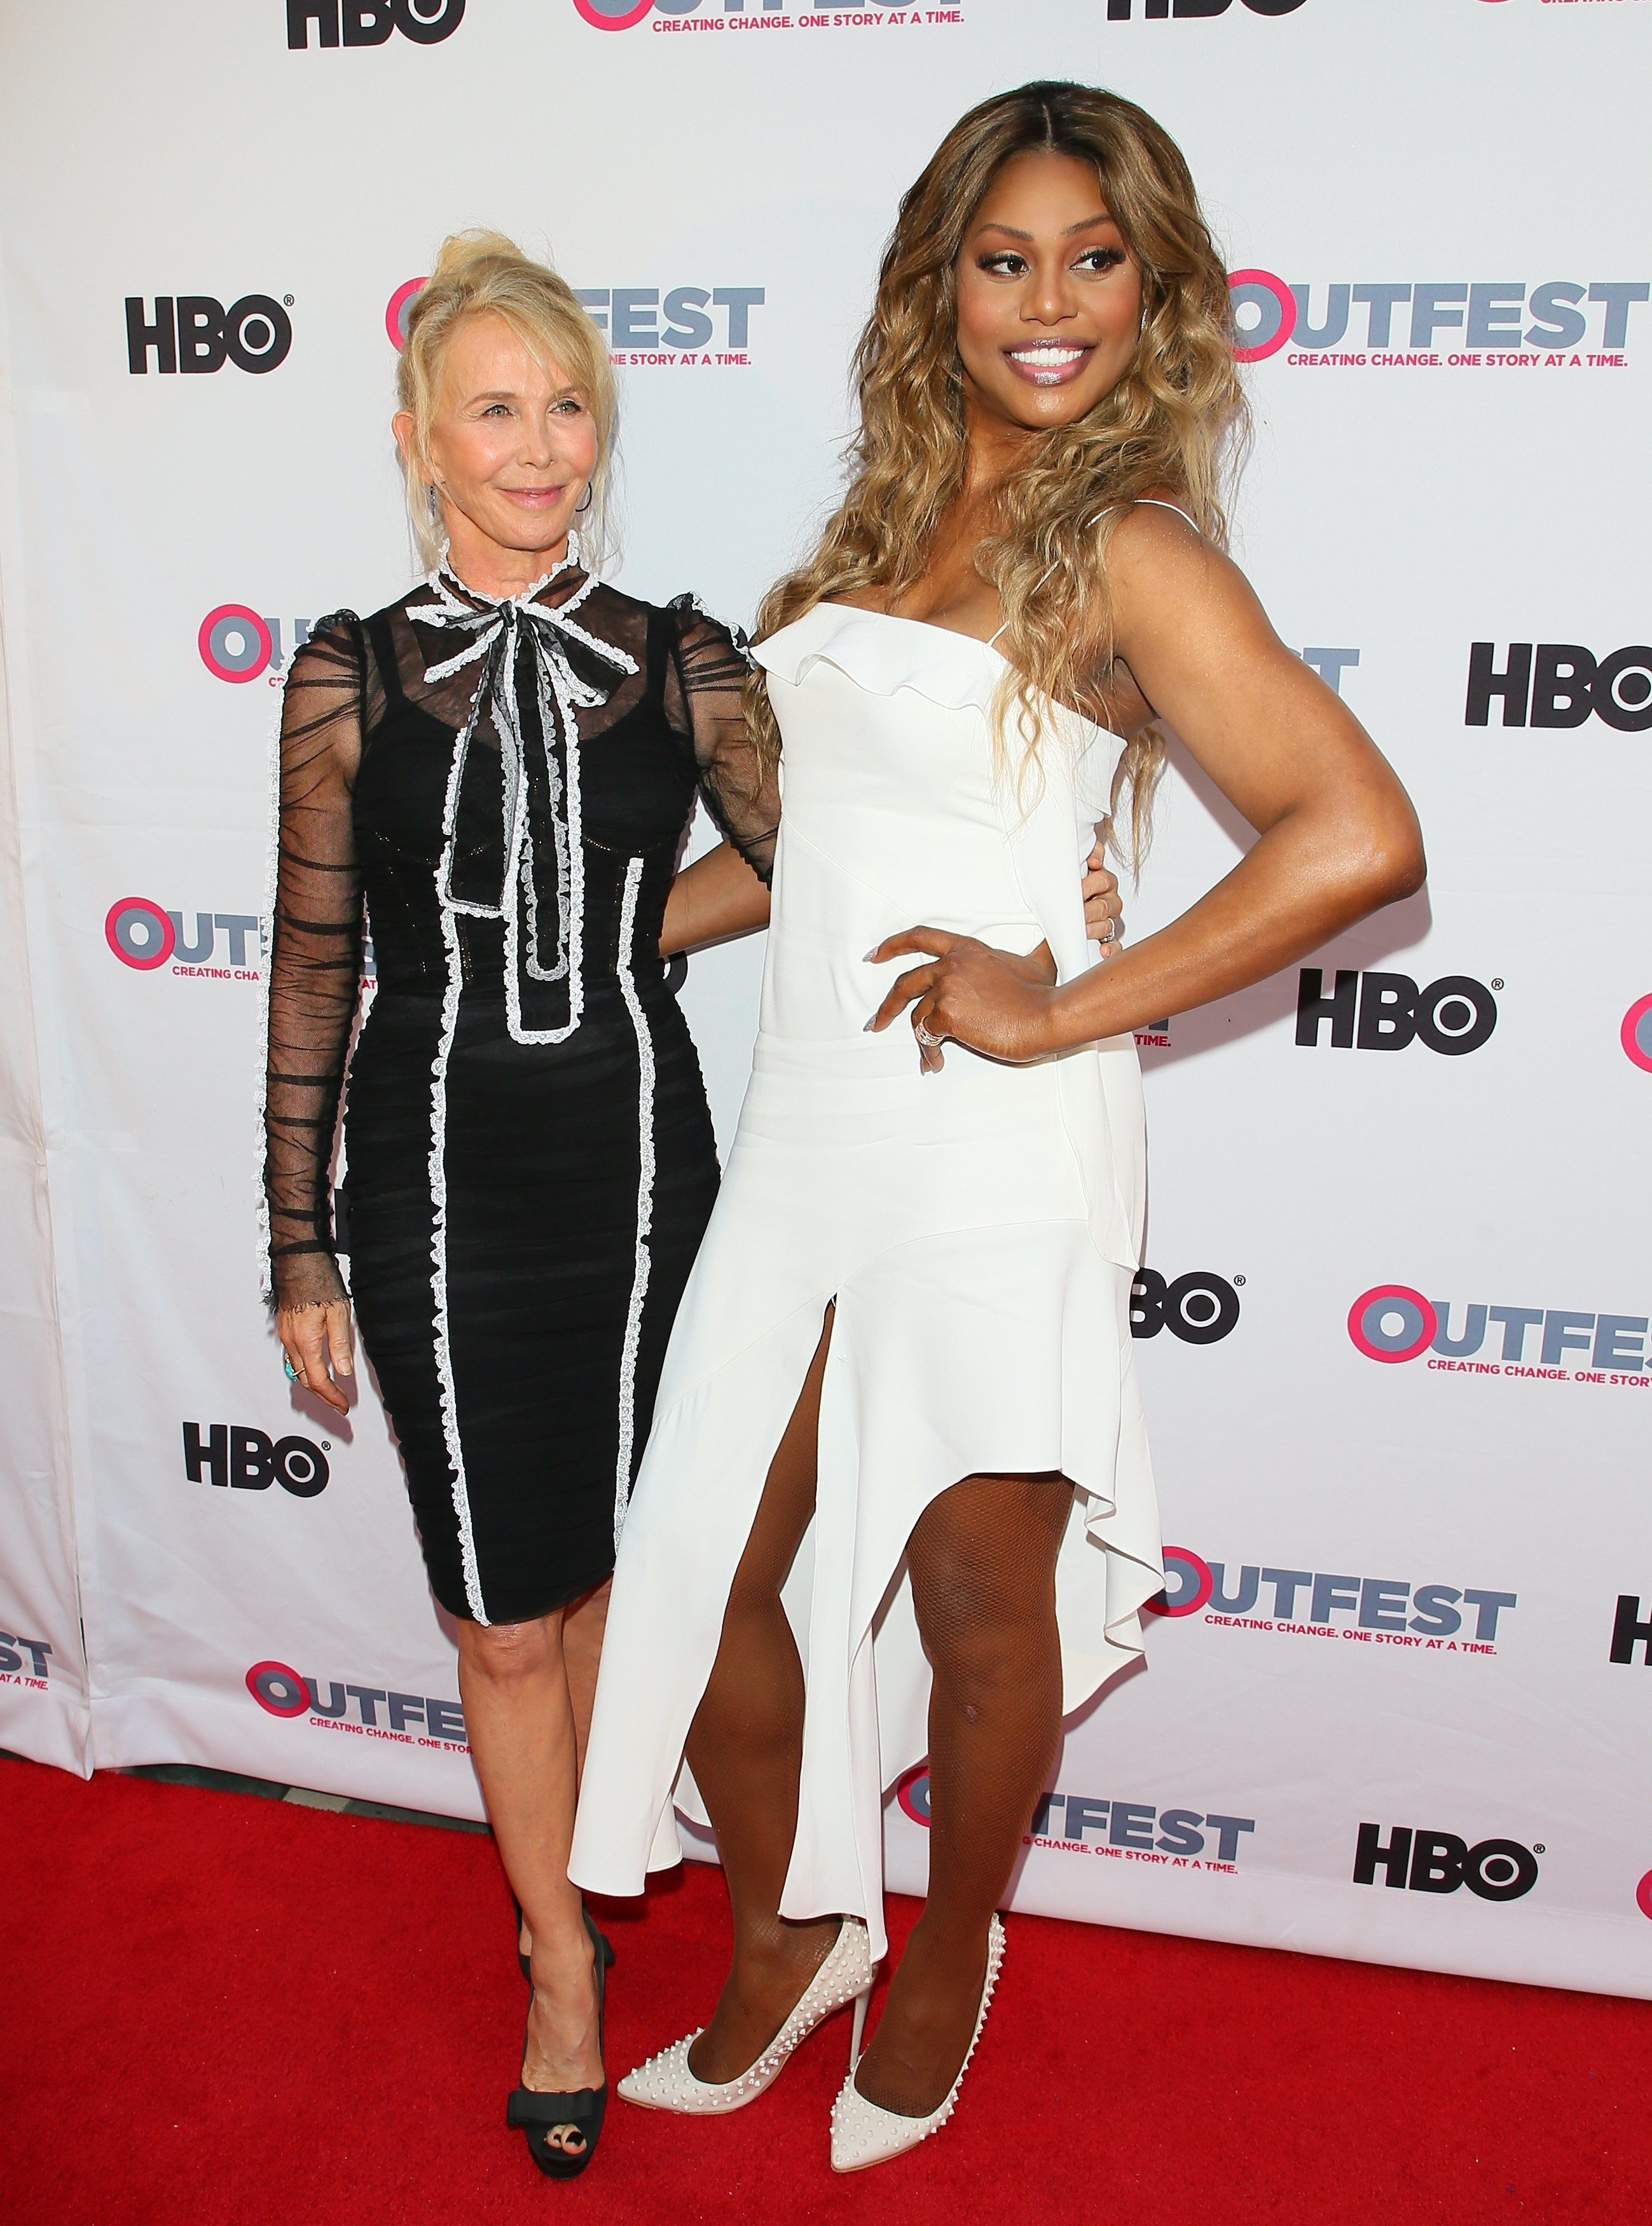 LOS ANGELES, CA - JULY 16: Trudie Styler and Laverne Cox attend the 2017 Outfest Los Angeles LGBT Film Festival - Closing Night Gala Screening Of ''Freak Show' on July 16, 2017 in Los Angeles, California. (Photo by JB Lacroix/WireImage)